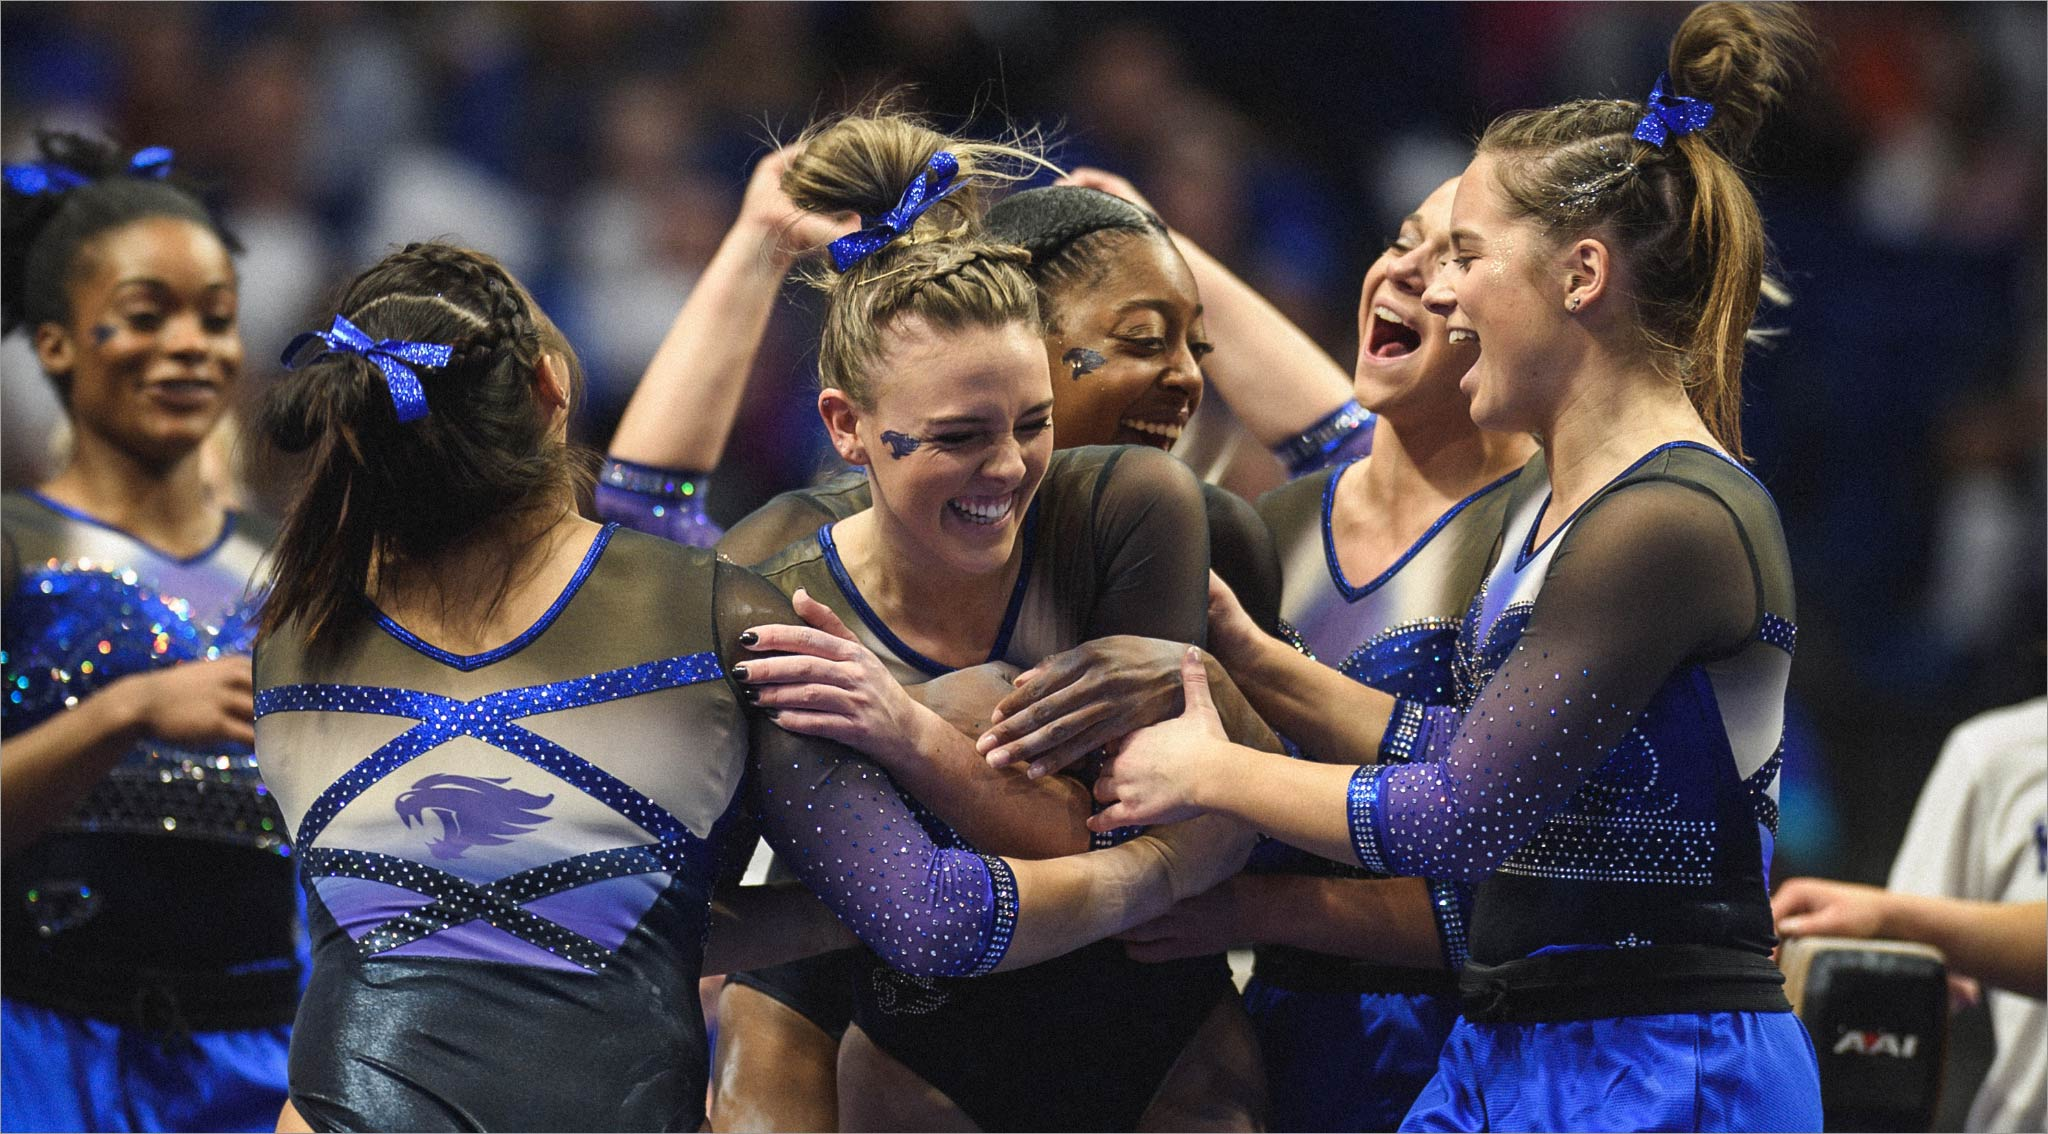 Mac celebrates with a group of very excited gymnasts, all wearing matching blue and black leotards. They are all smiling, jumping, and hugging Mac.